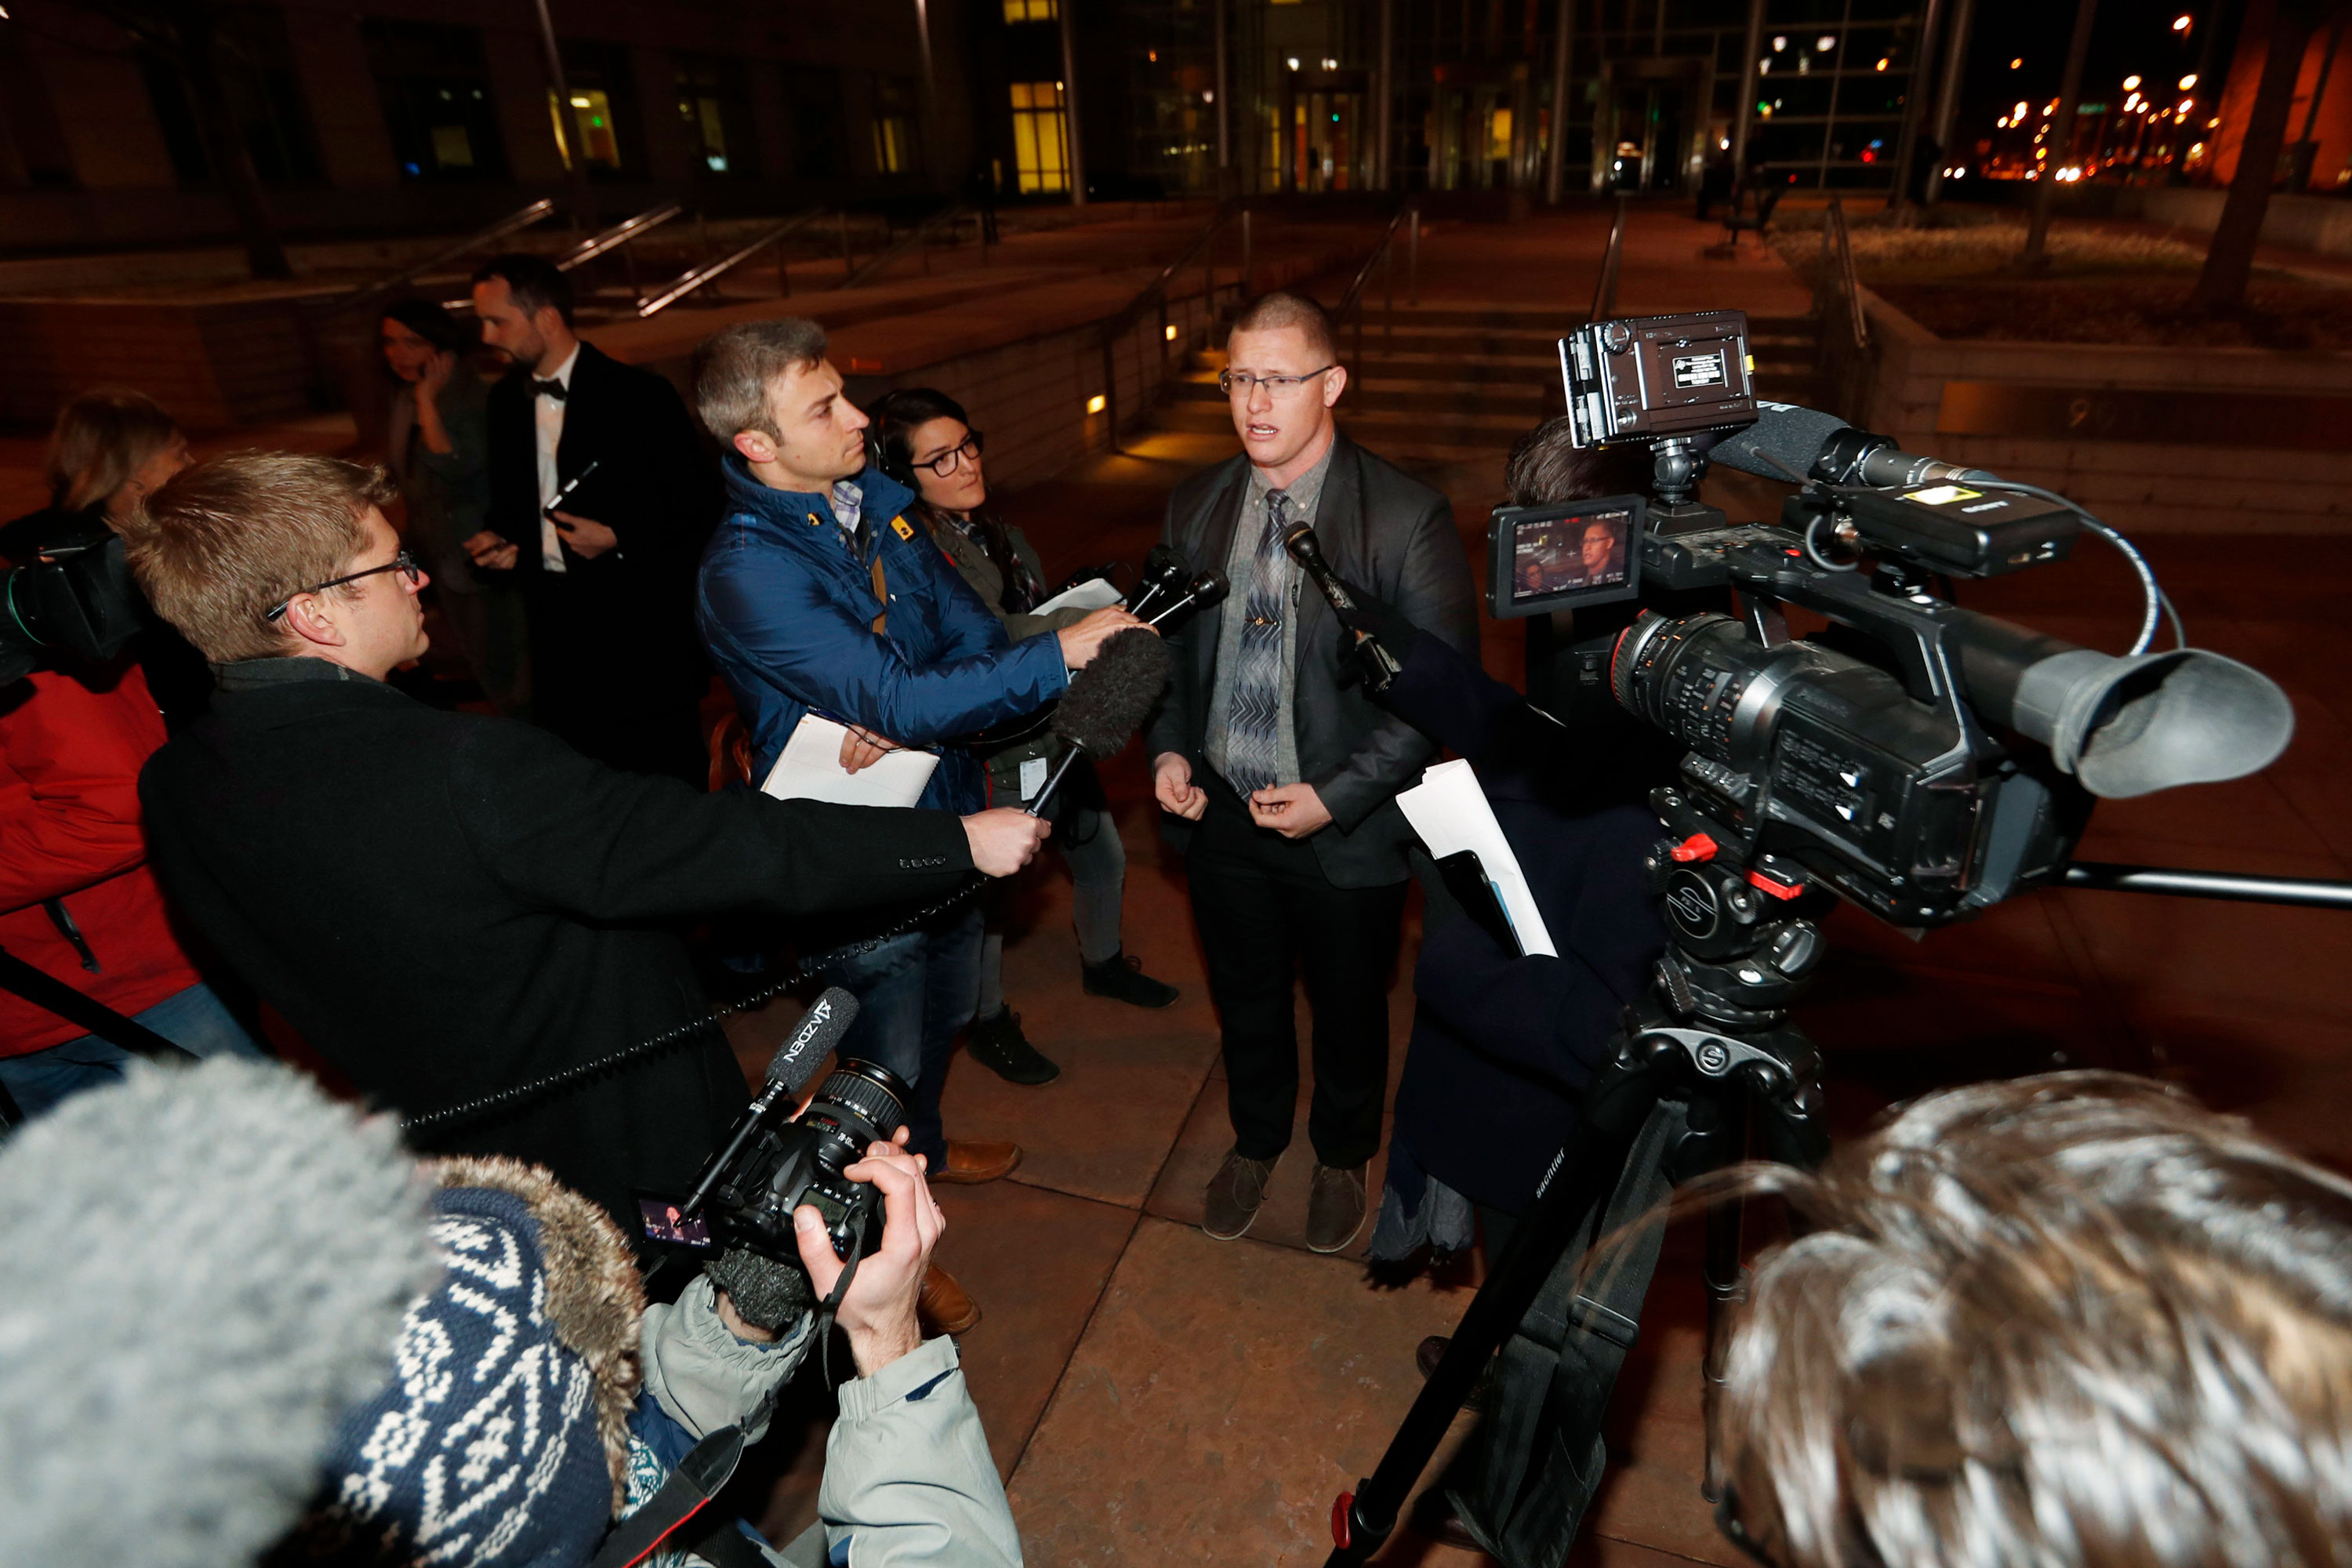 Photo: Micheal Baca, Elector Lawsuit, Denver Fed Courthouse - AP Photo